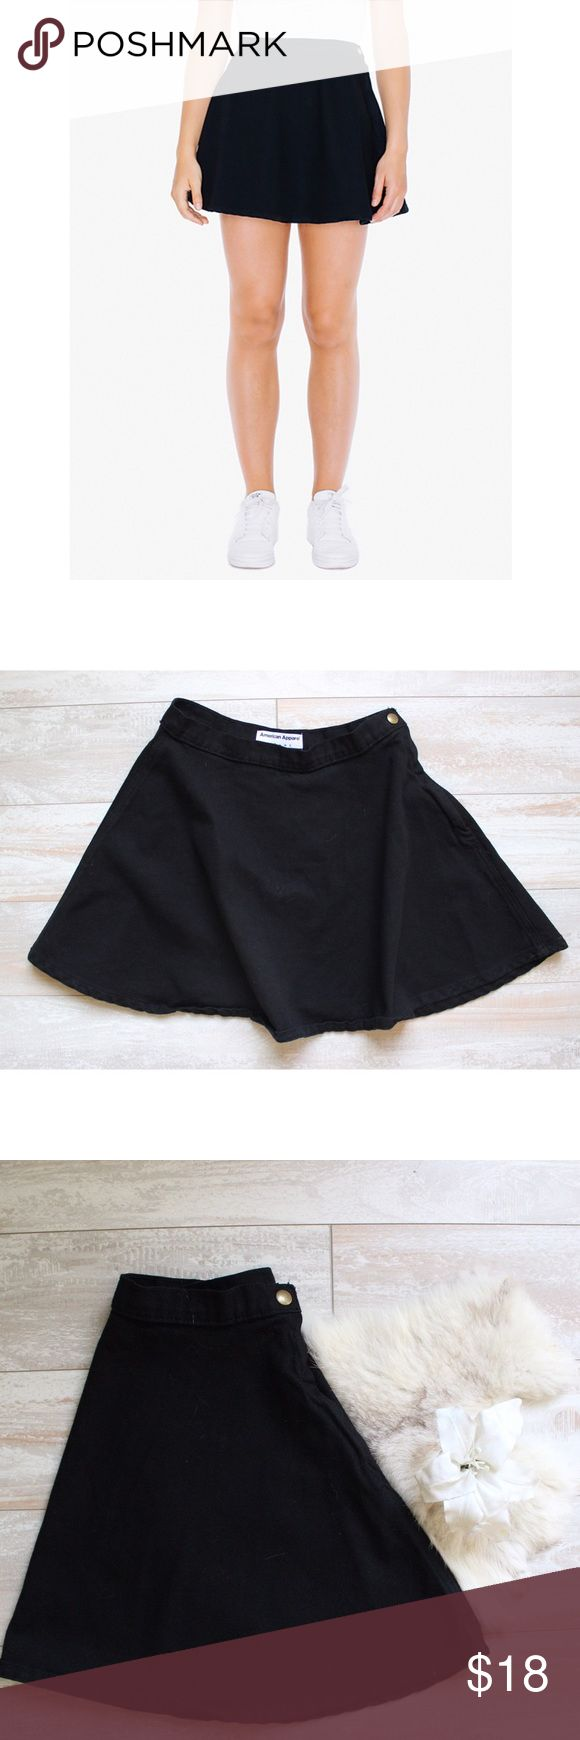 American Apparel Circle Skirt ⭐️ American Apparel circle skirt, great conditions, looks new, super cute paired with Crop top as seen above😍, measurements laying flat waist 13' length 15' ⭐️bundle&save⭐️ American Apparel Skirts Circle & Skater